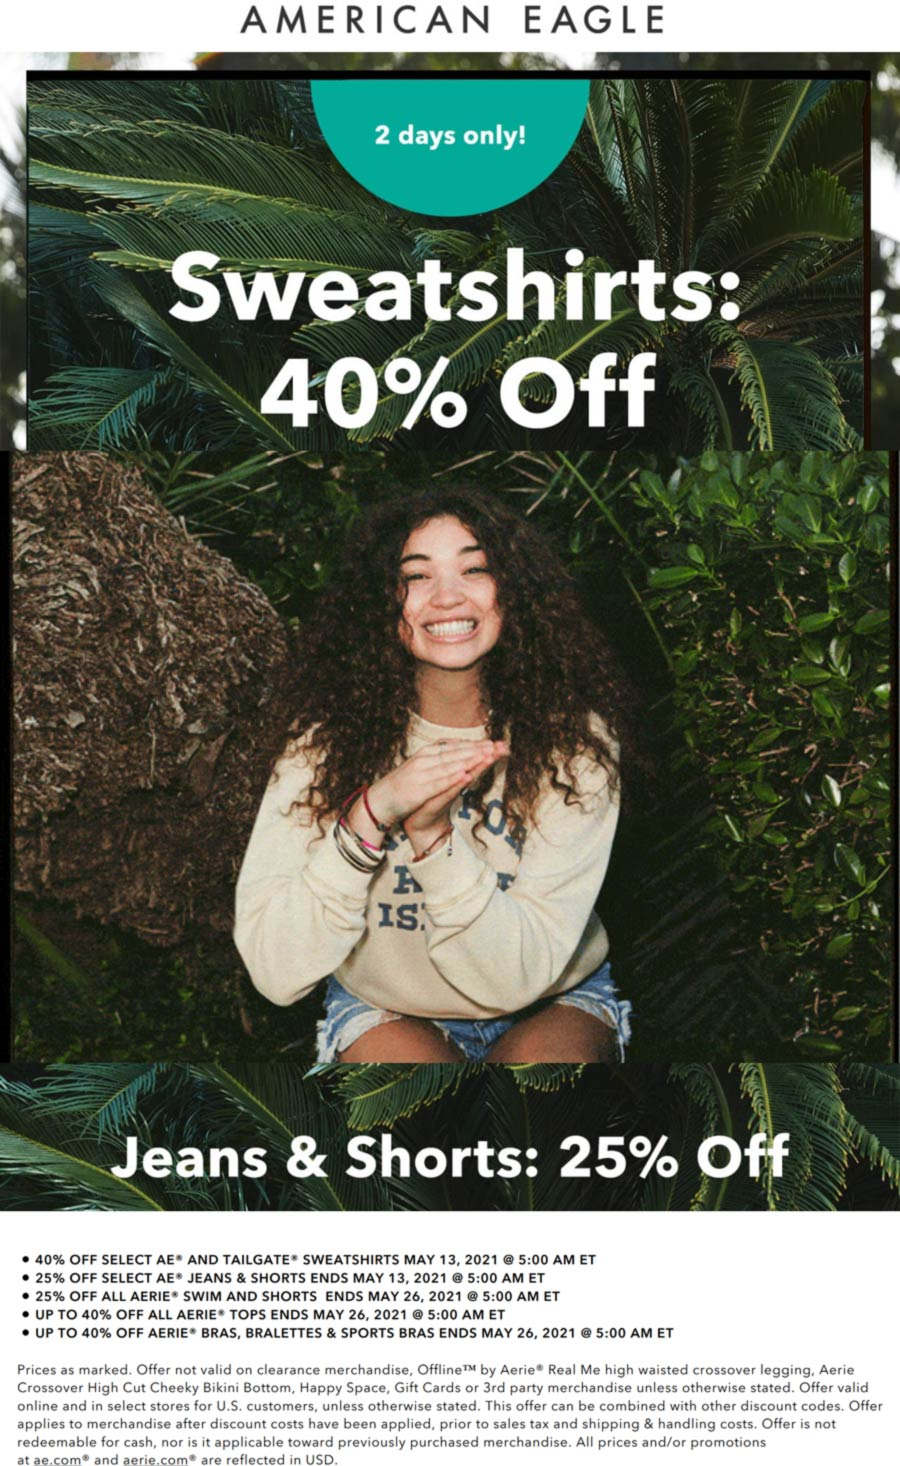 American Eagle stores Coupon  40% off sweatshirts & 25% off jeans and shorts at American Eagle #americaneagle